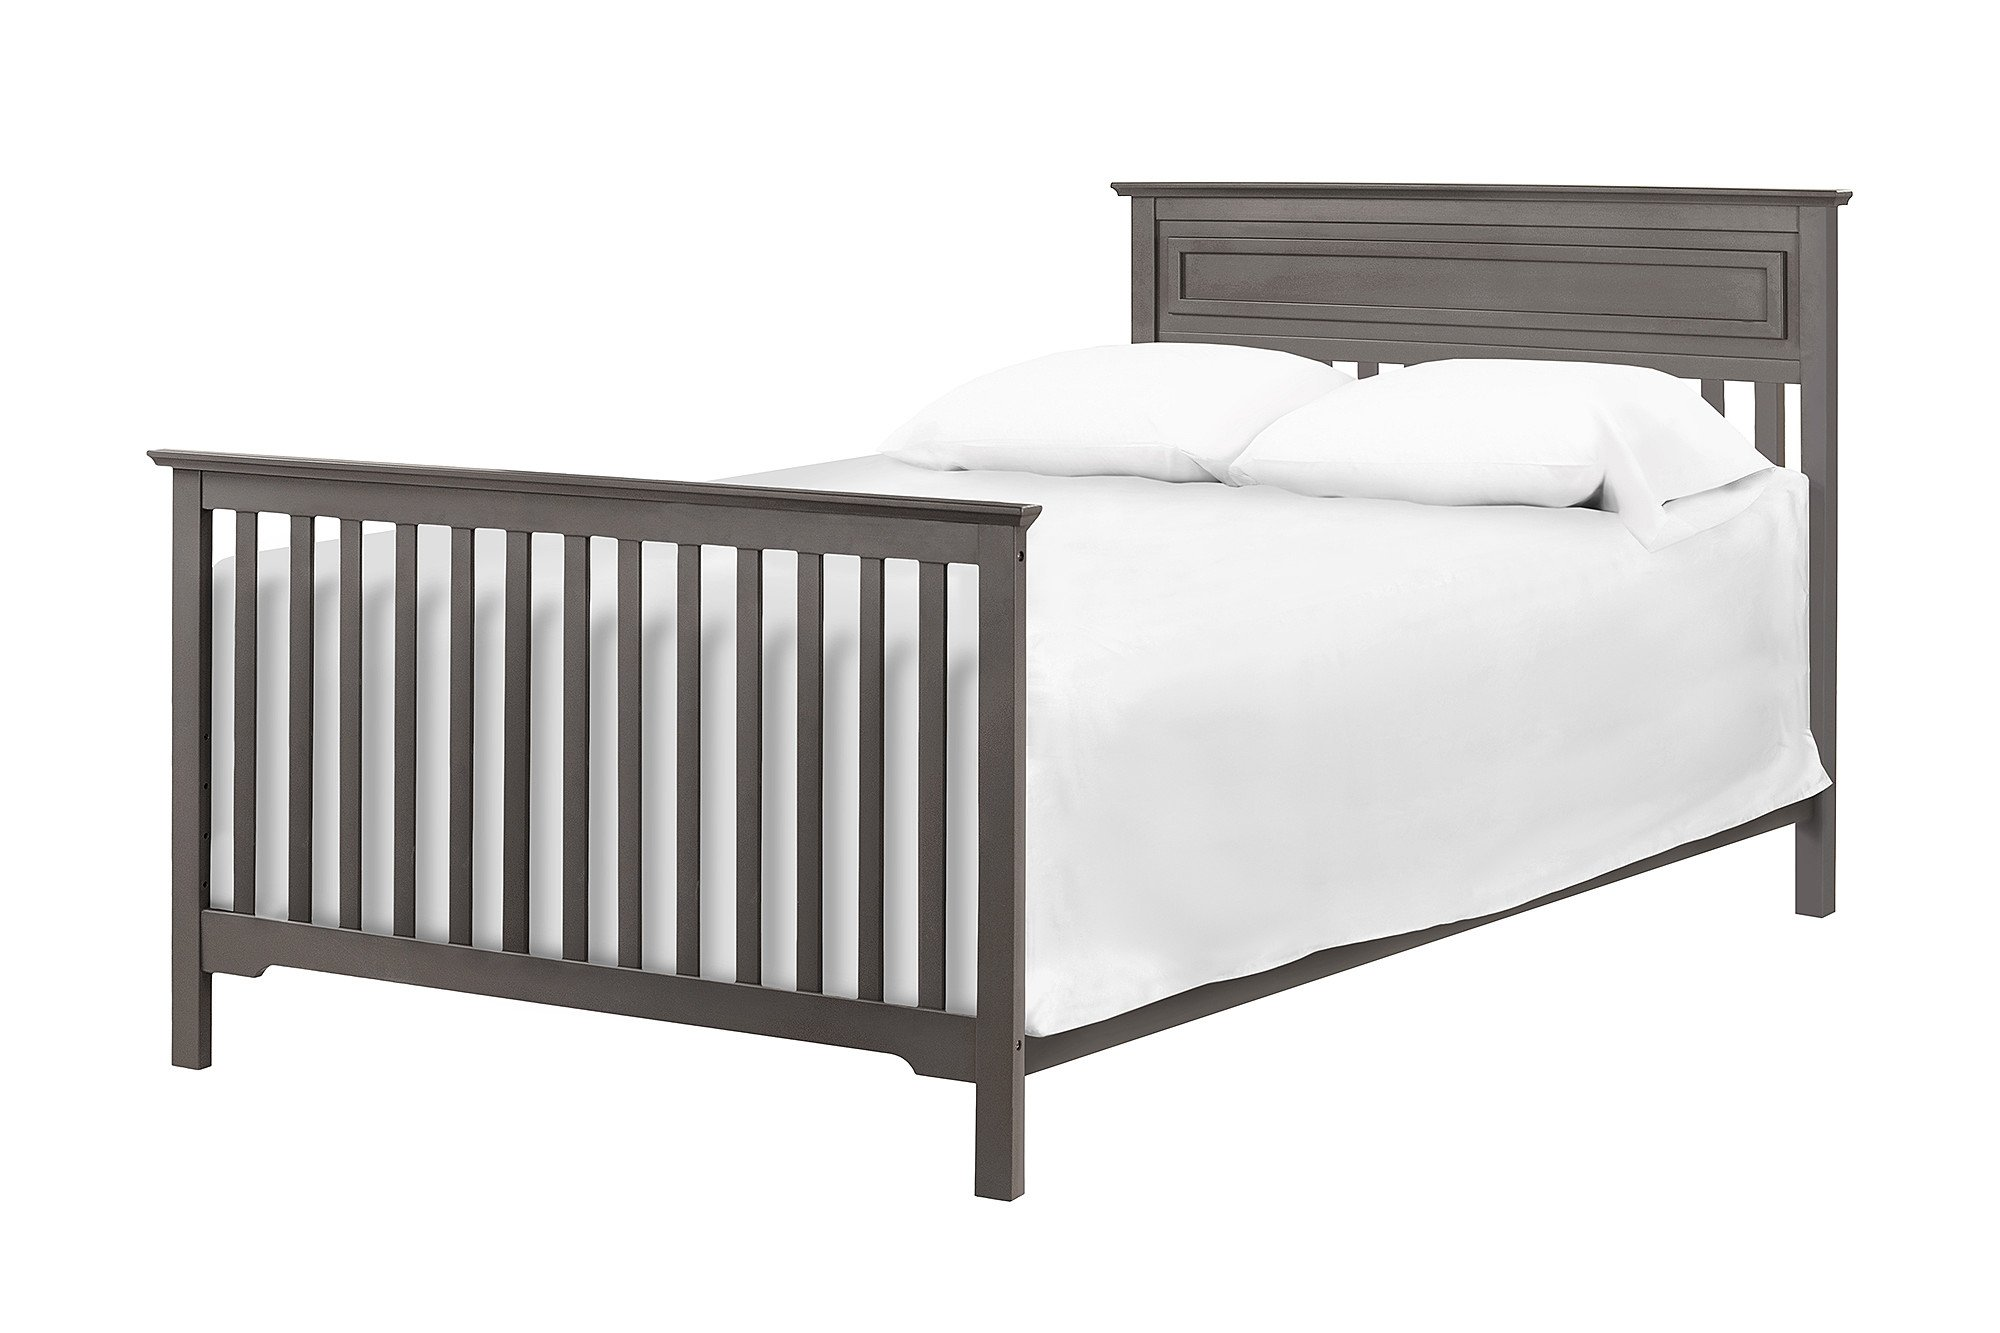 Full Size Conversion Kit Bed Rails for Davinci Autumn 4-in-1 Crib - Slate by Grow-with-Me Crib Conversion Kits (Image #2)